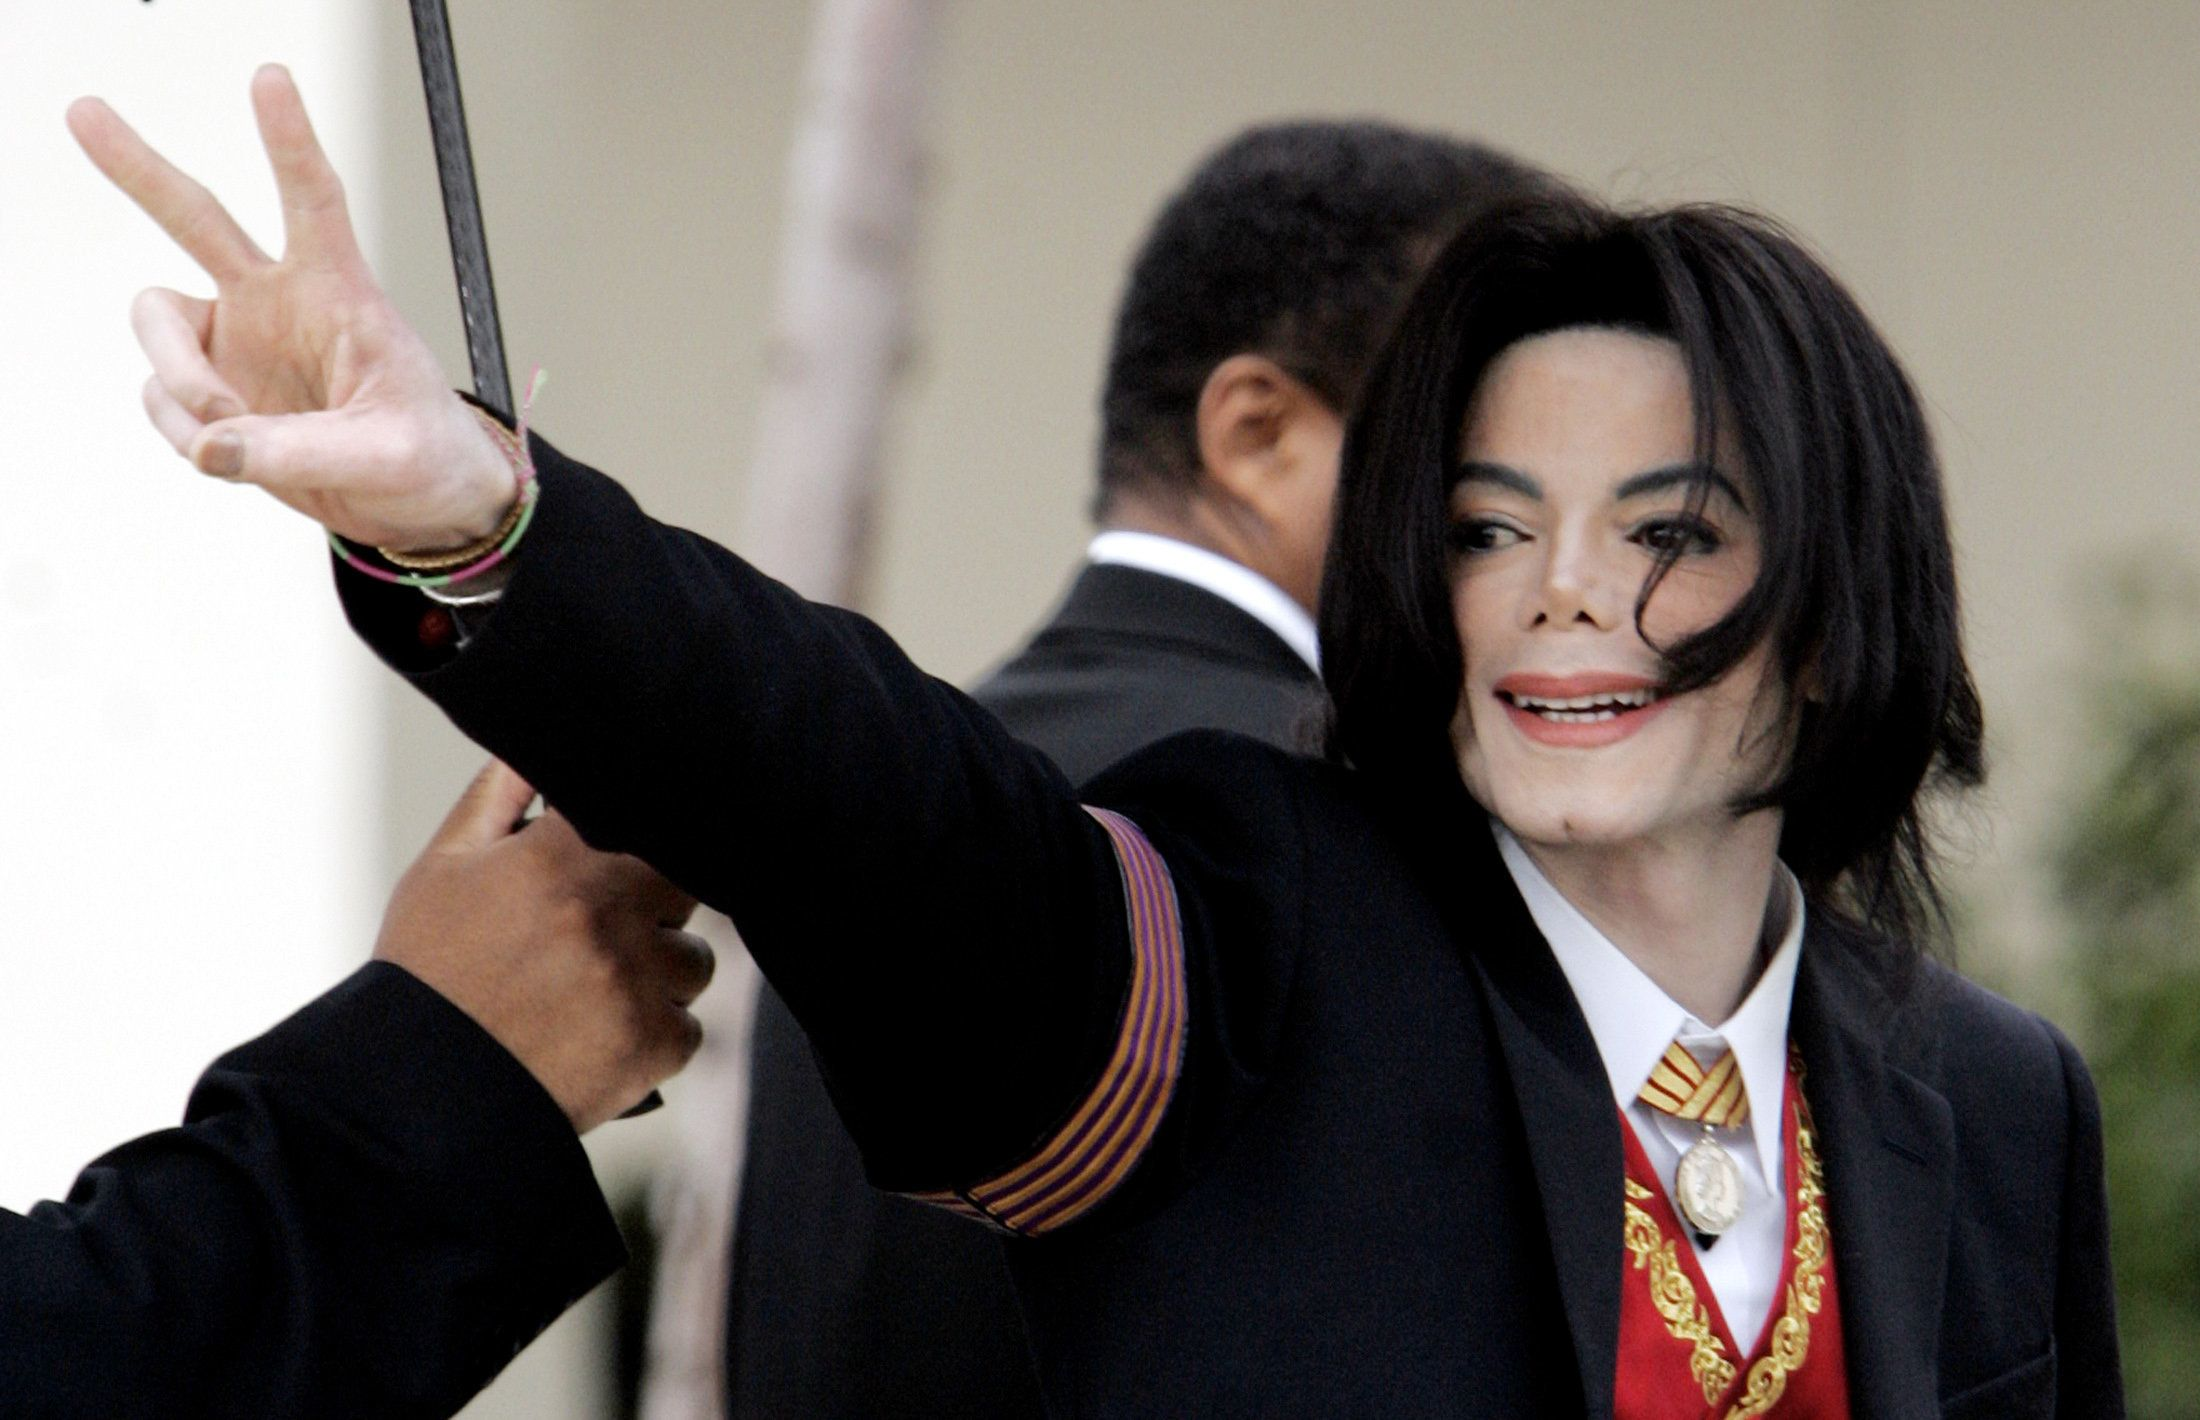 Plans For New Michael Jackson Biopic Revealed, After Sky Arts' Ditch Controversial TV